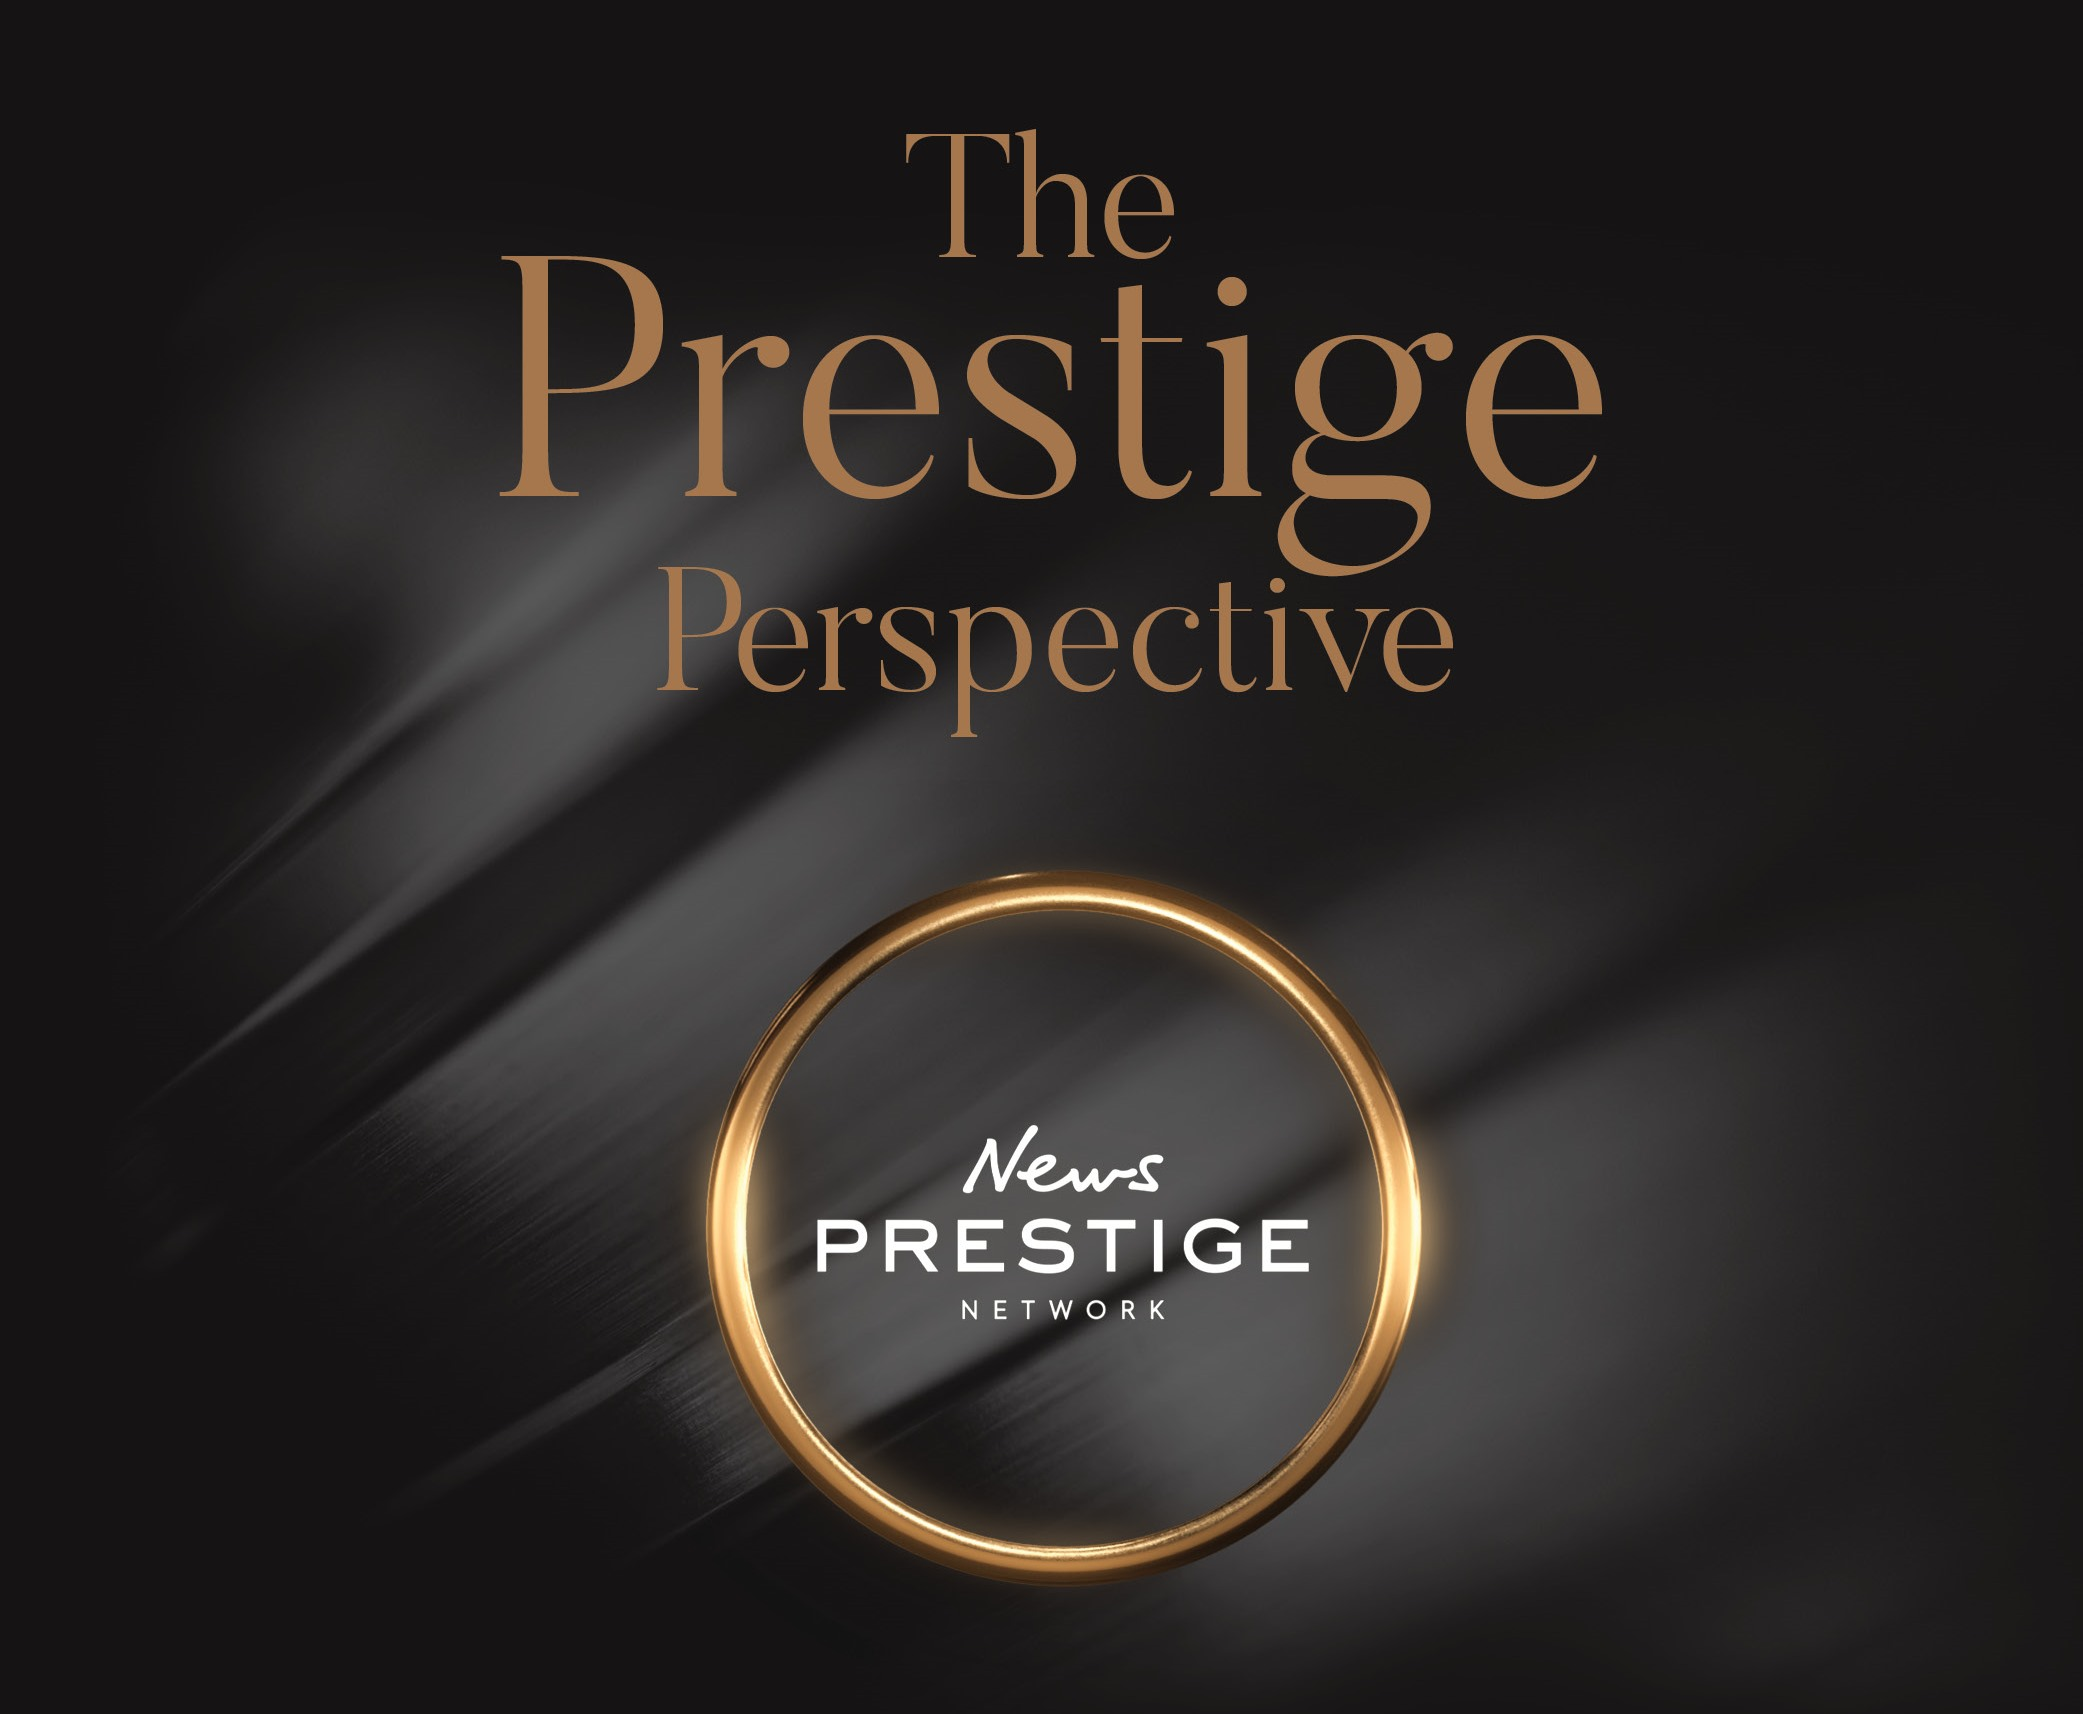 News Prestige Network_The Prestige Perspective